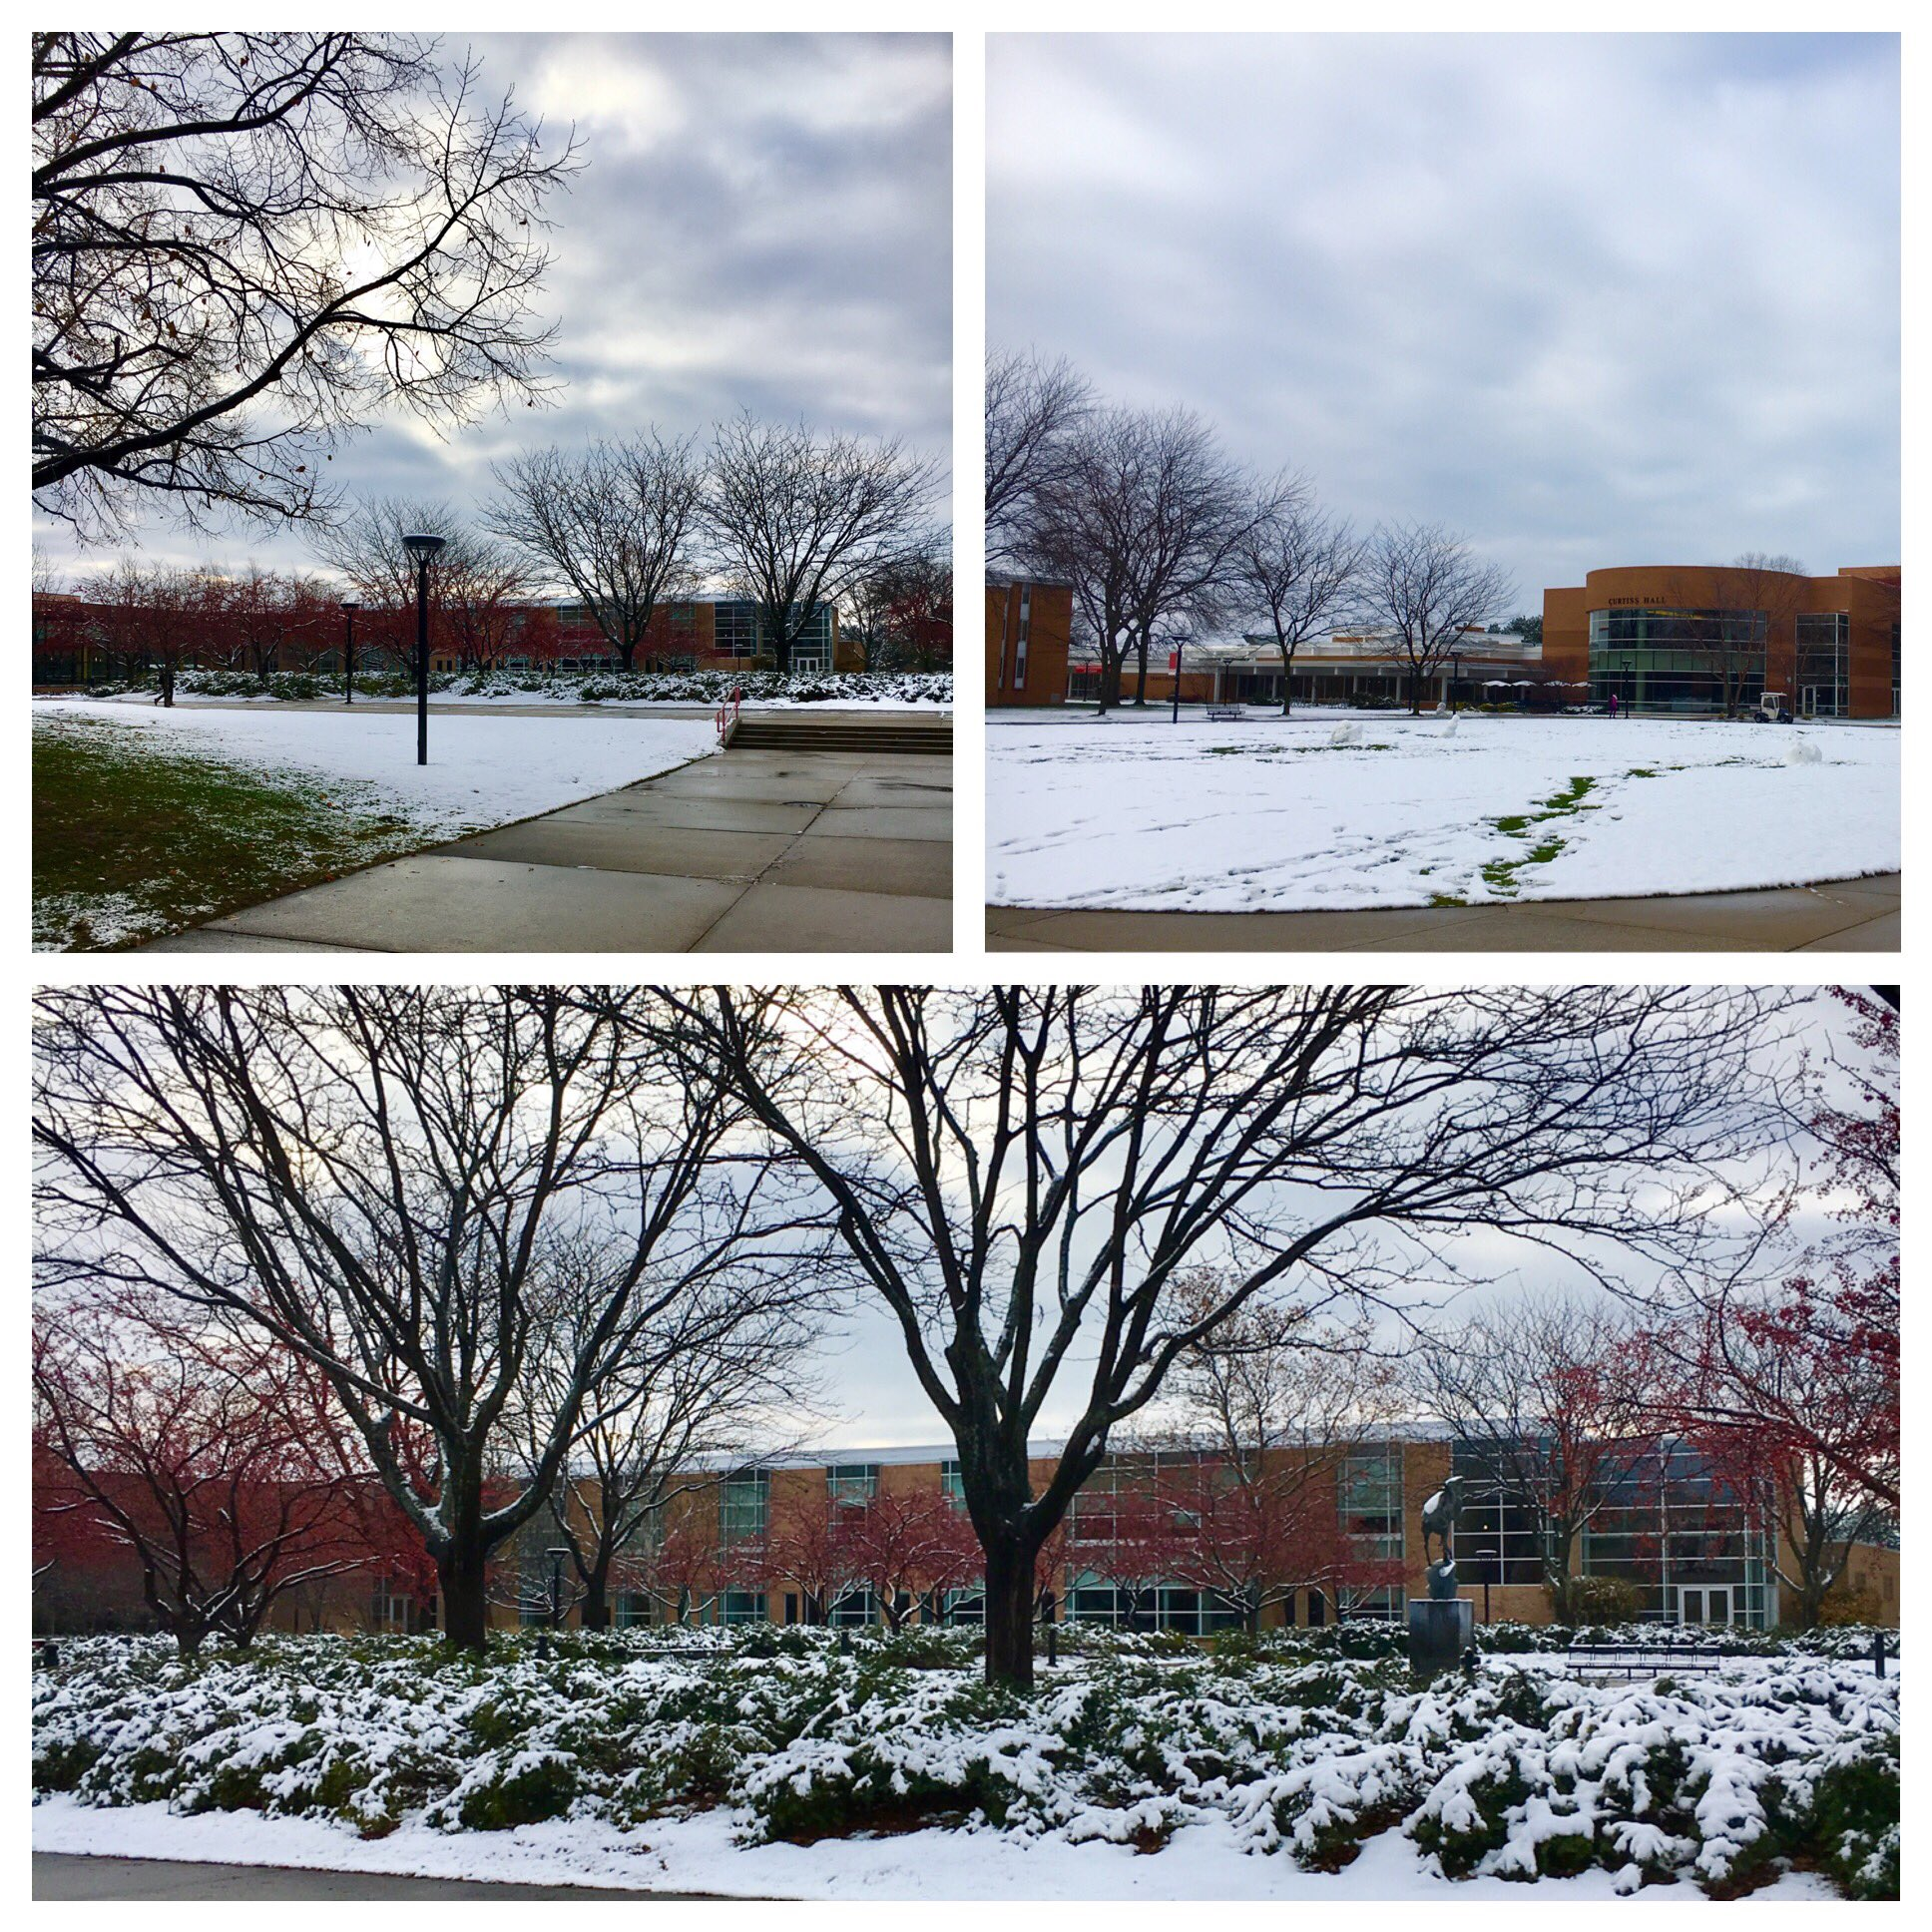 Campus was covered in a beautiful blanket of snow this morning! Looks like winter has finally arrived! #WeCardinal https://t.co/eM9alejgwi